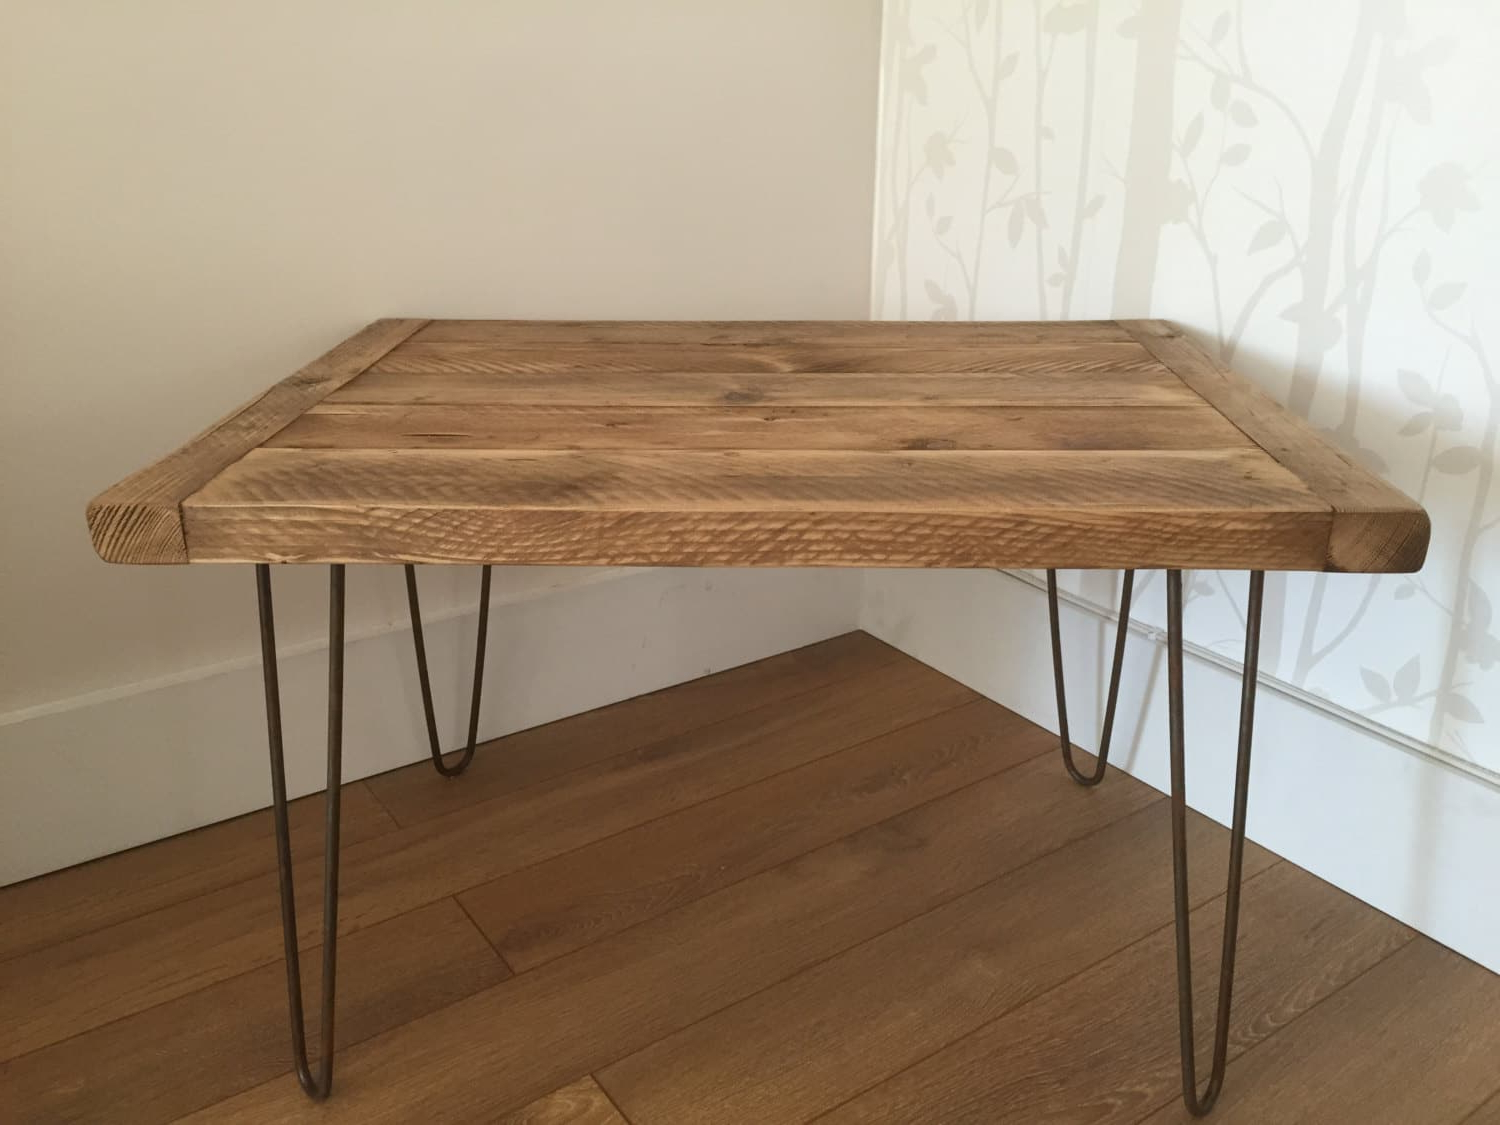 Most Current Reclaimed Pine & Iron Coffee Tables With Regard To Reclaimed Rustic Solid Pine Coffee Table With Metal Hairpin Legs (View 17 of 20)